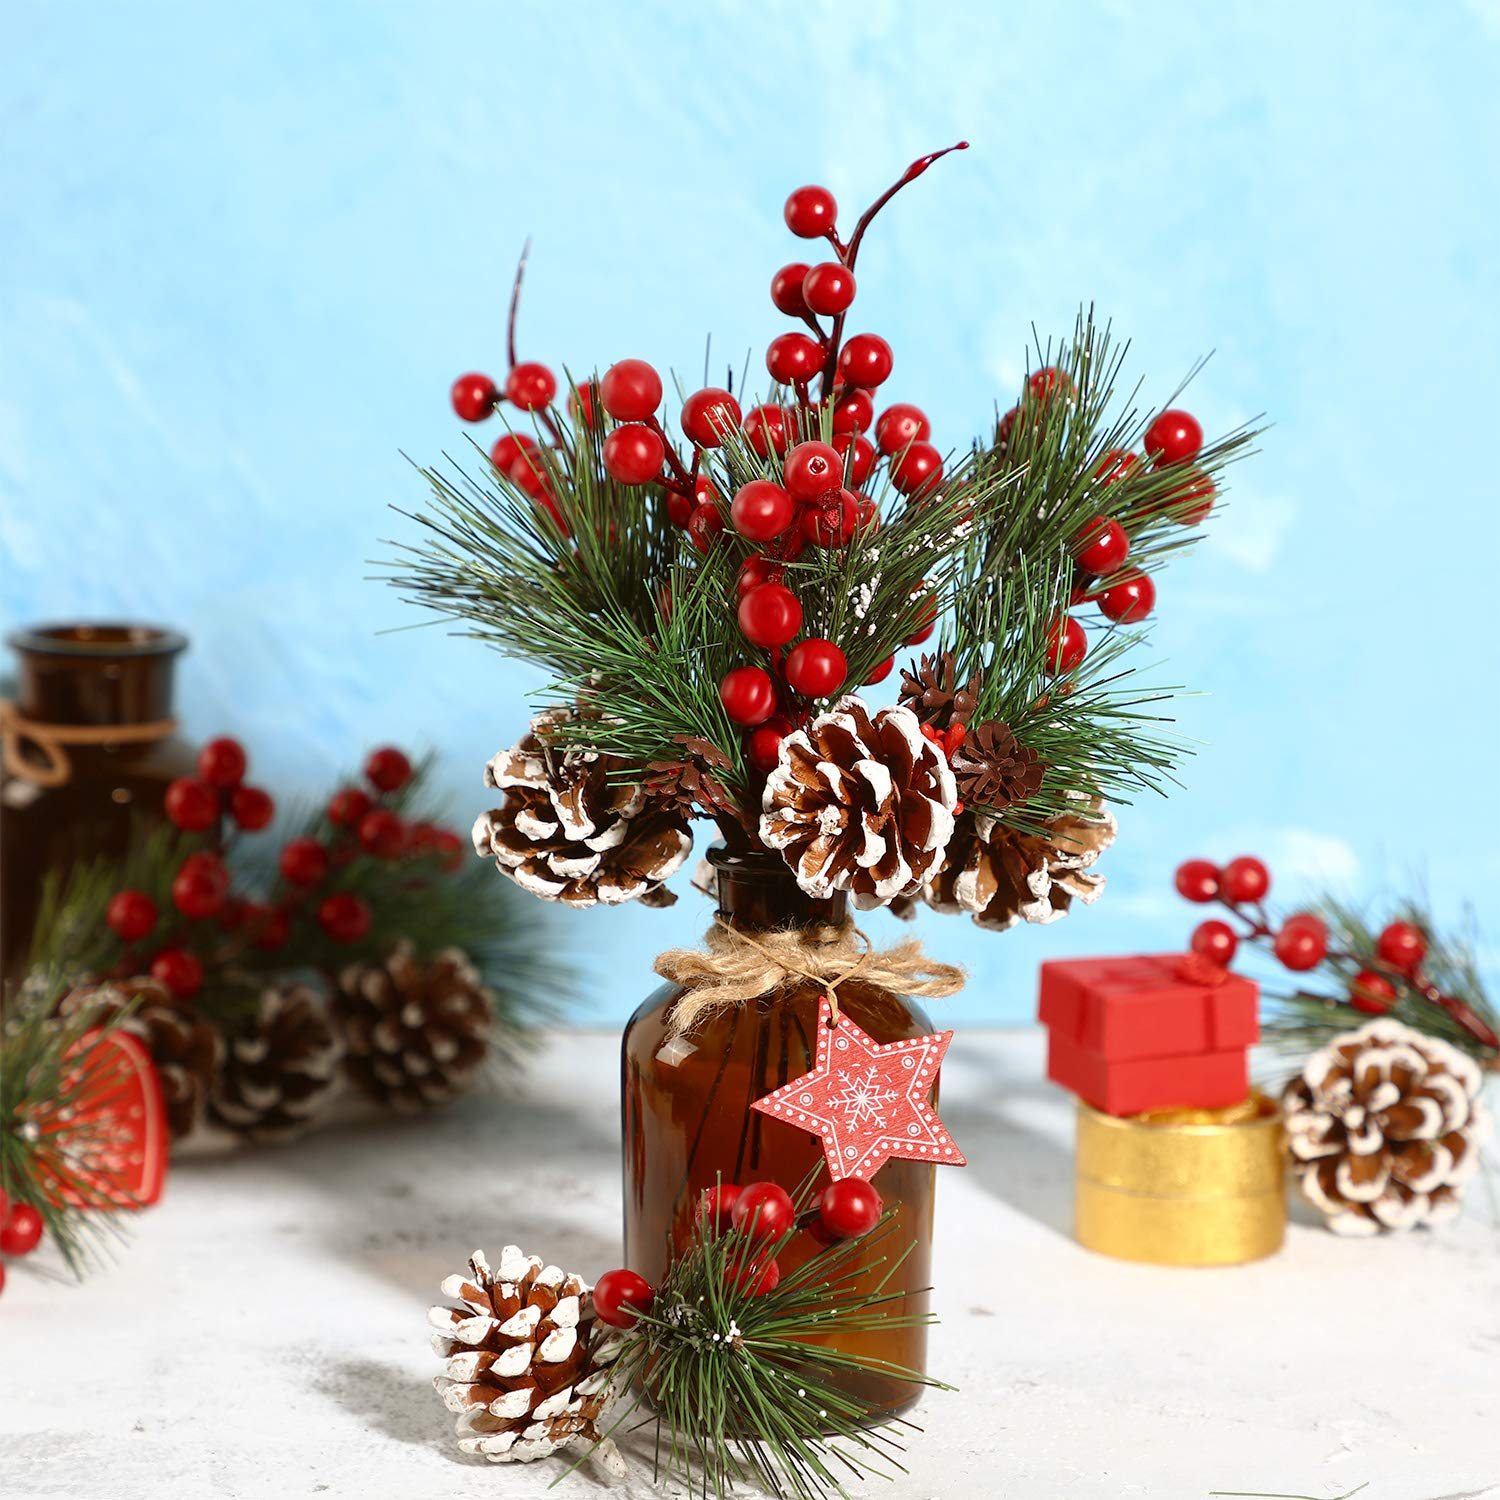 Artificial Pine Pick Artificial Pine Tree Decorations Fake Pinecone Red Berries Branches for Christmas Flower Arrangements Wreaths and Holiday Decorations 10 Pieces